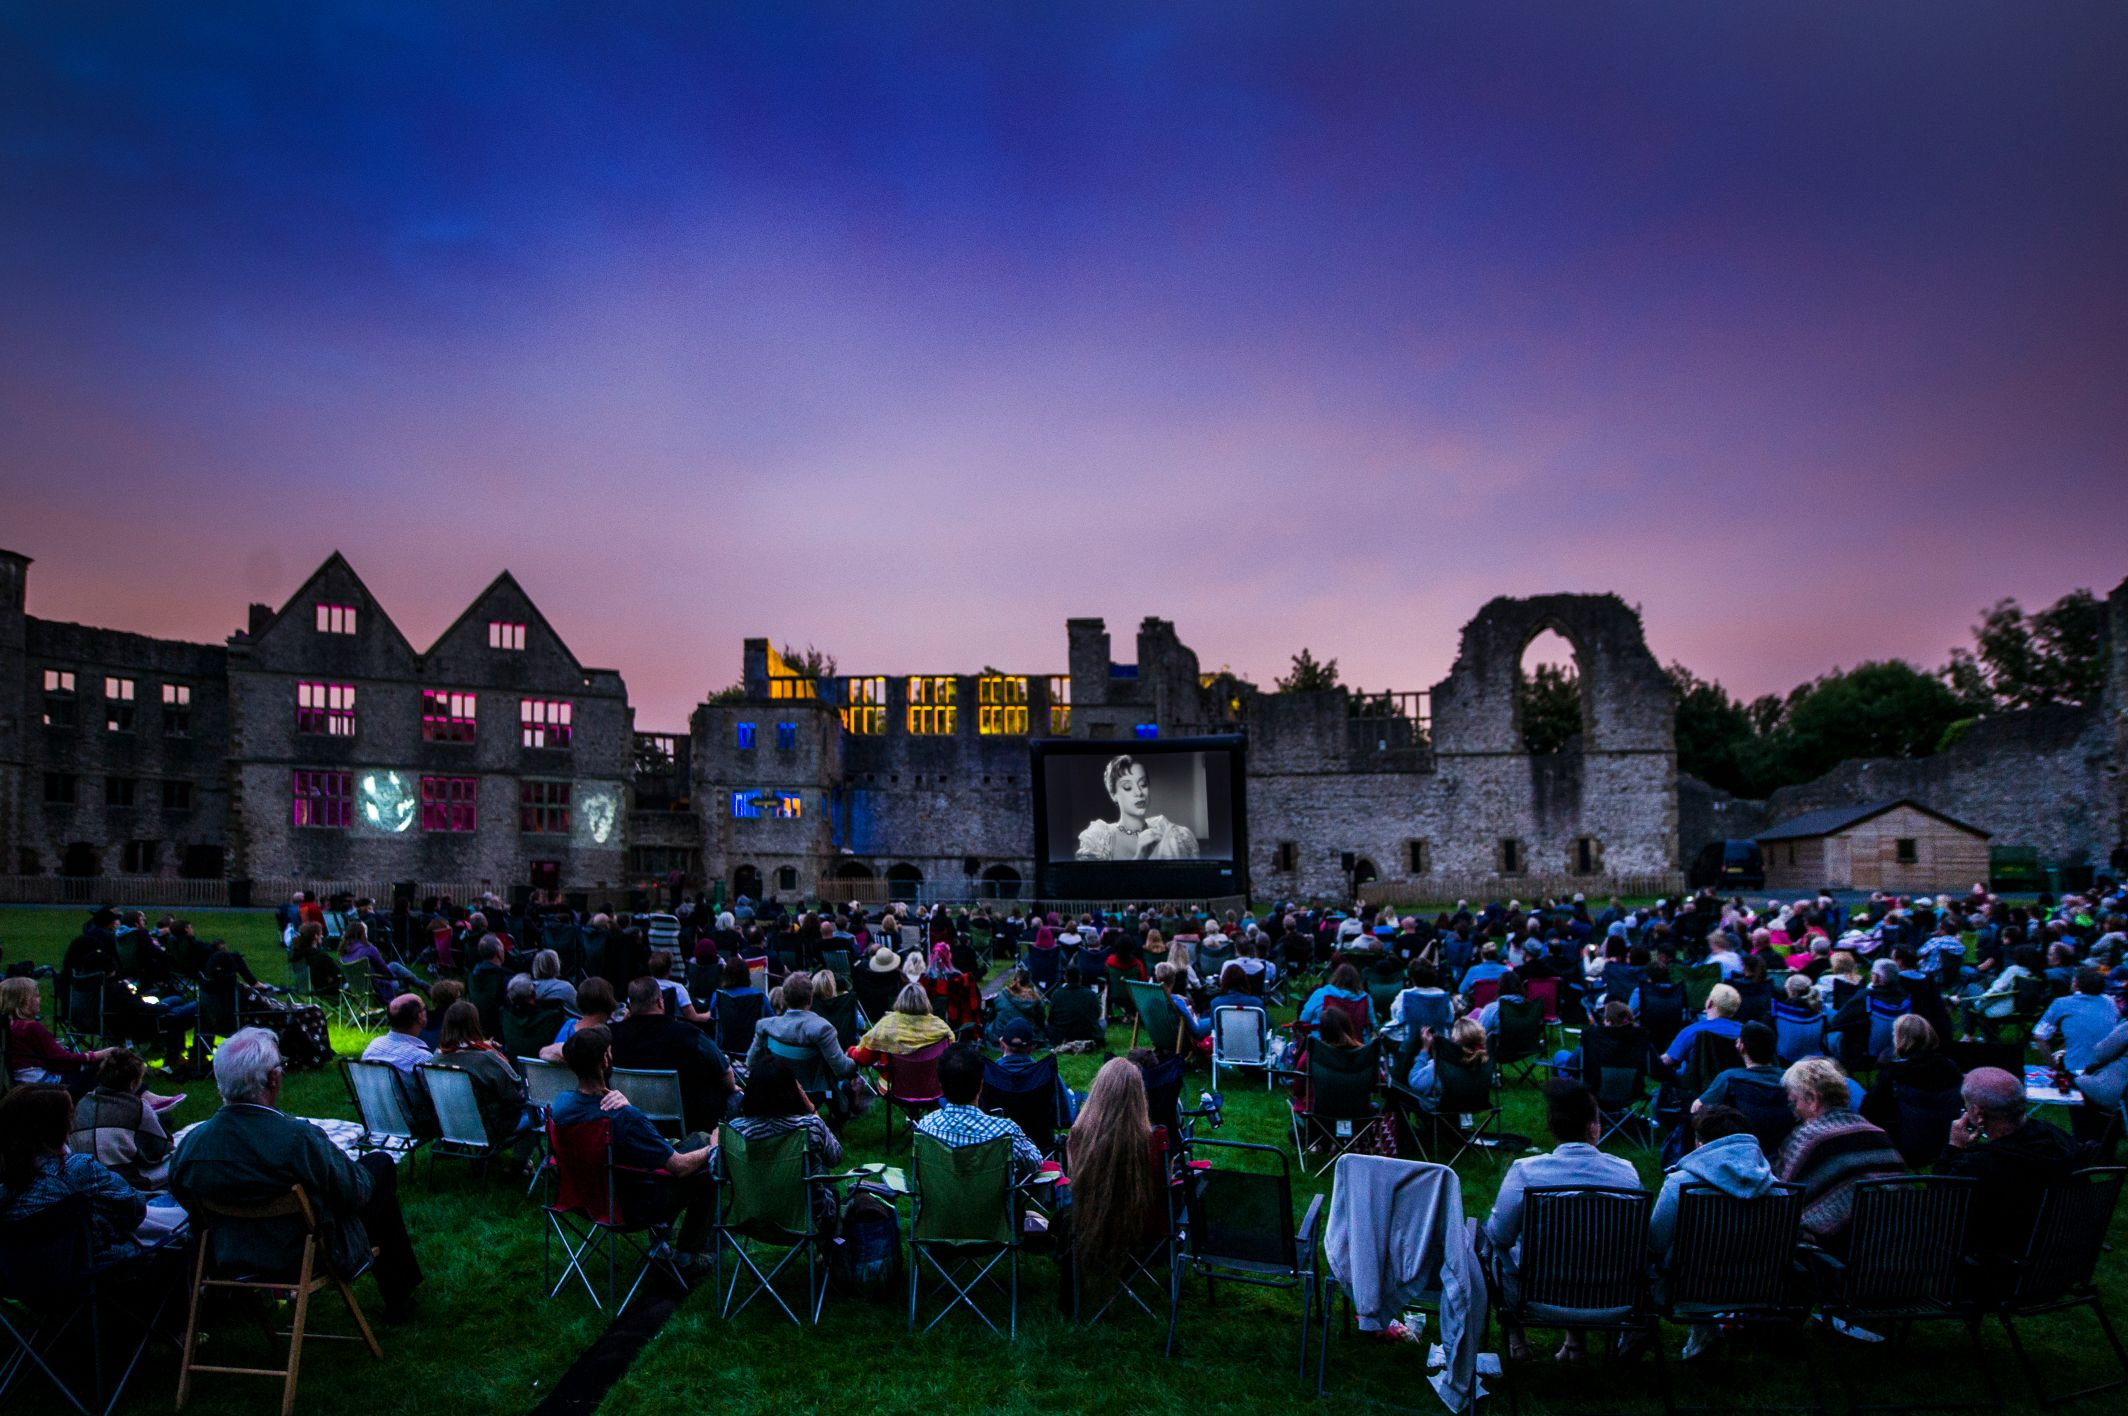 Flatpack outdoor cinema at Dudley Castle - part of CBC's Imagine That! summer season in 2016. Image by Katja Ogrin.